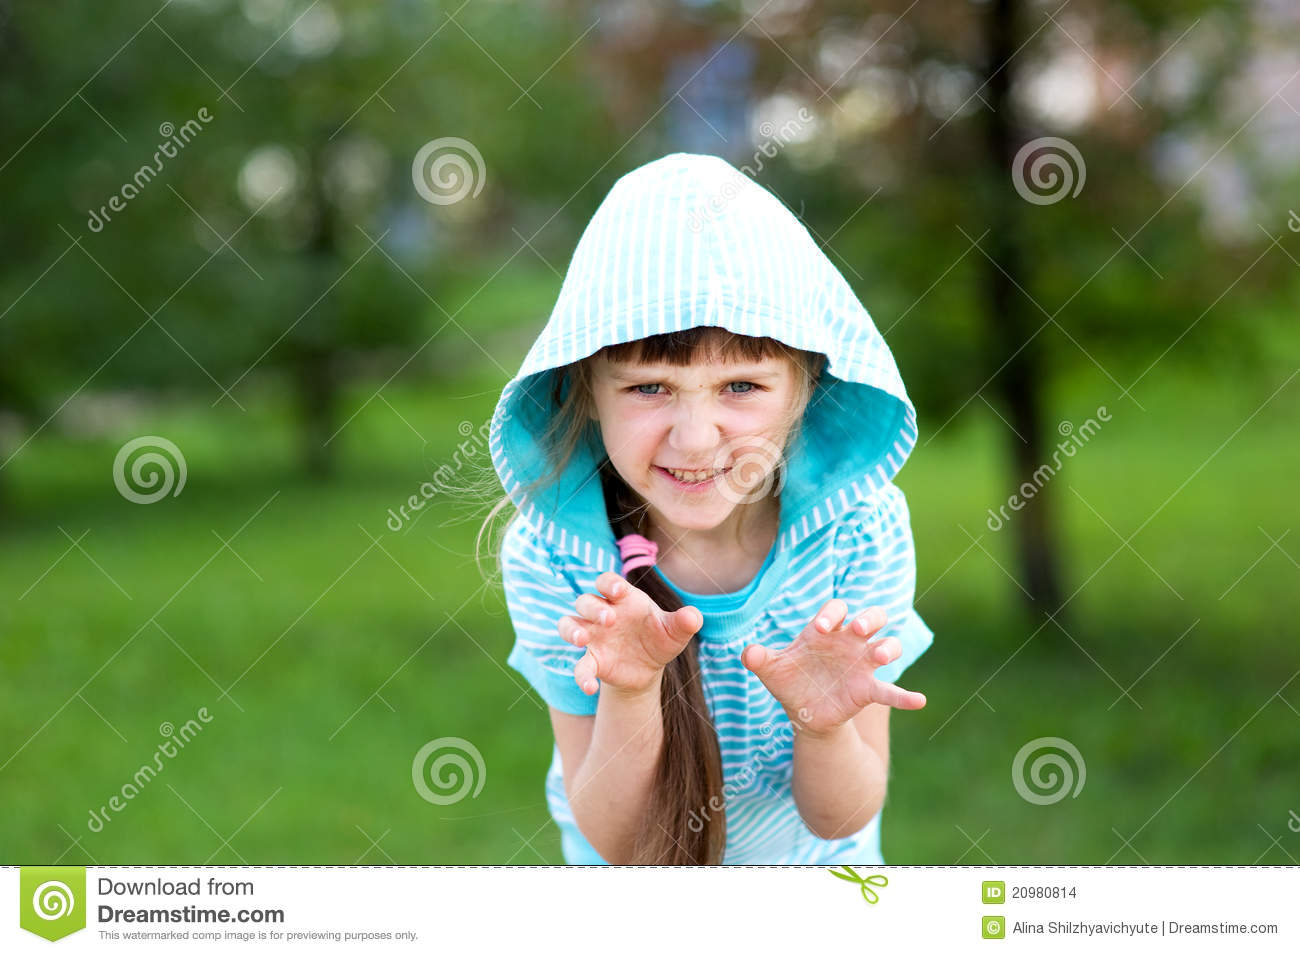 Cute child girl poses outdoors with scary face